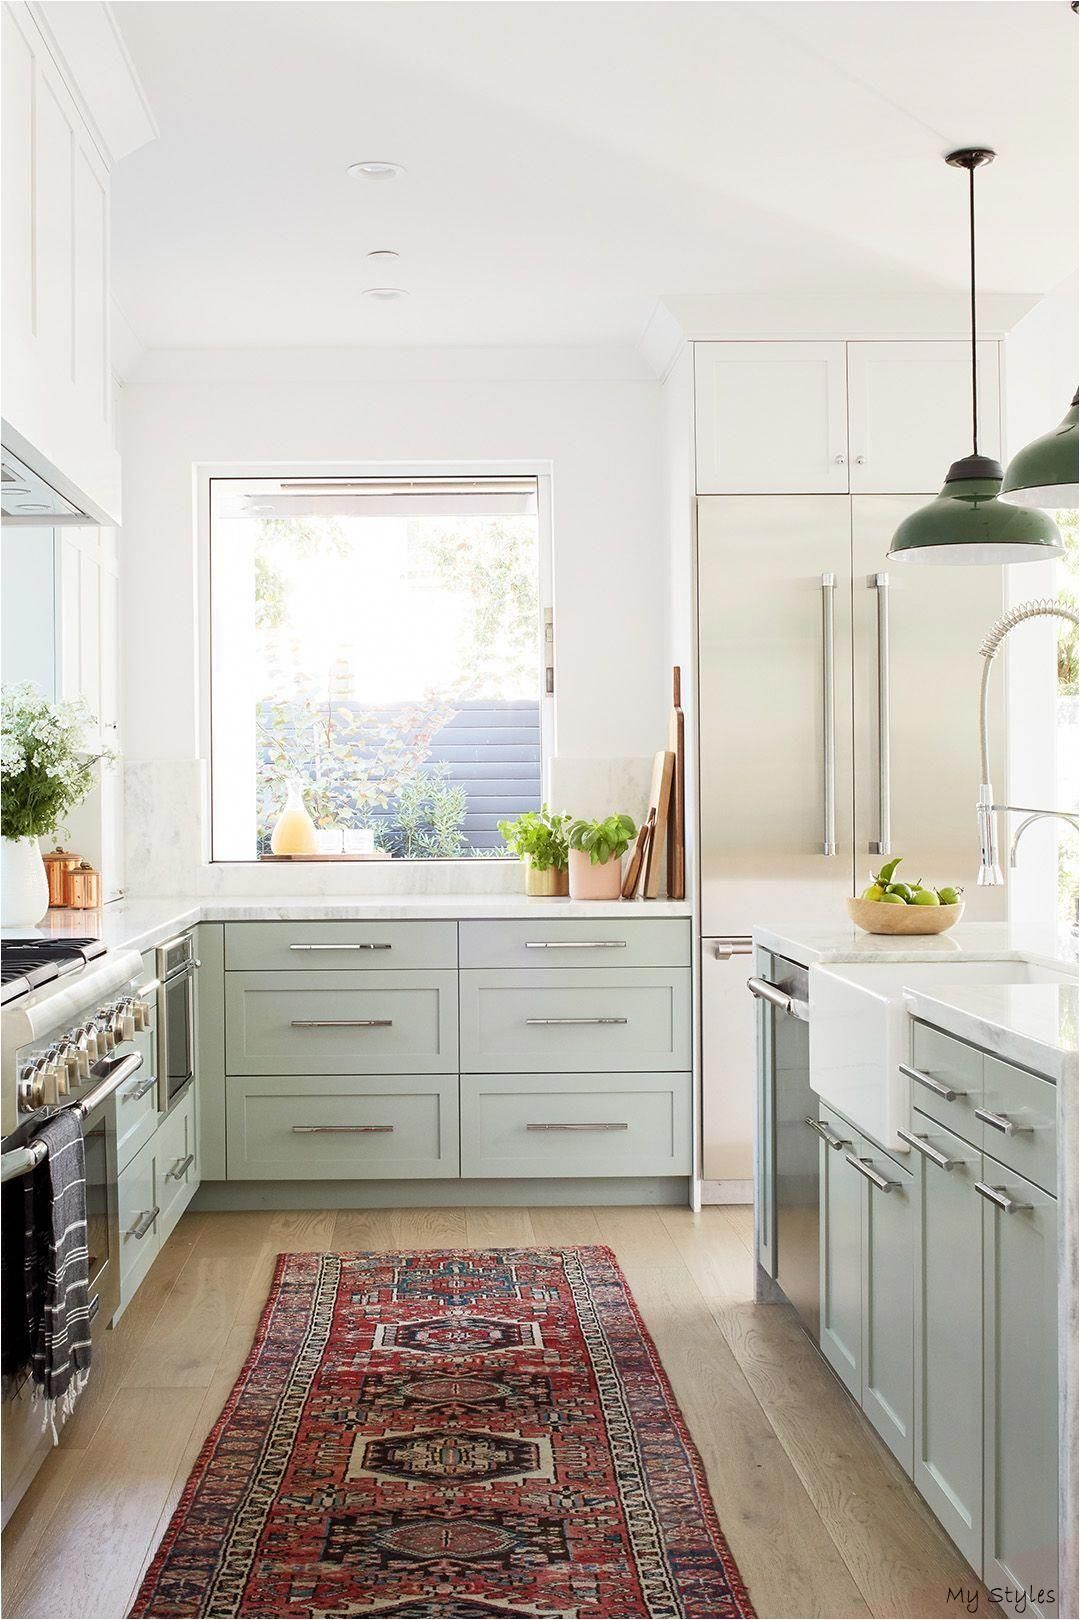 Dec 1 2019 And Where To Buy Them For Less Than 50 Persian Rug Kitchen White Kitchen Rugs Contemporary Kitchen Rug in kitchen with hardwood floor